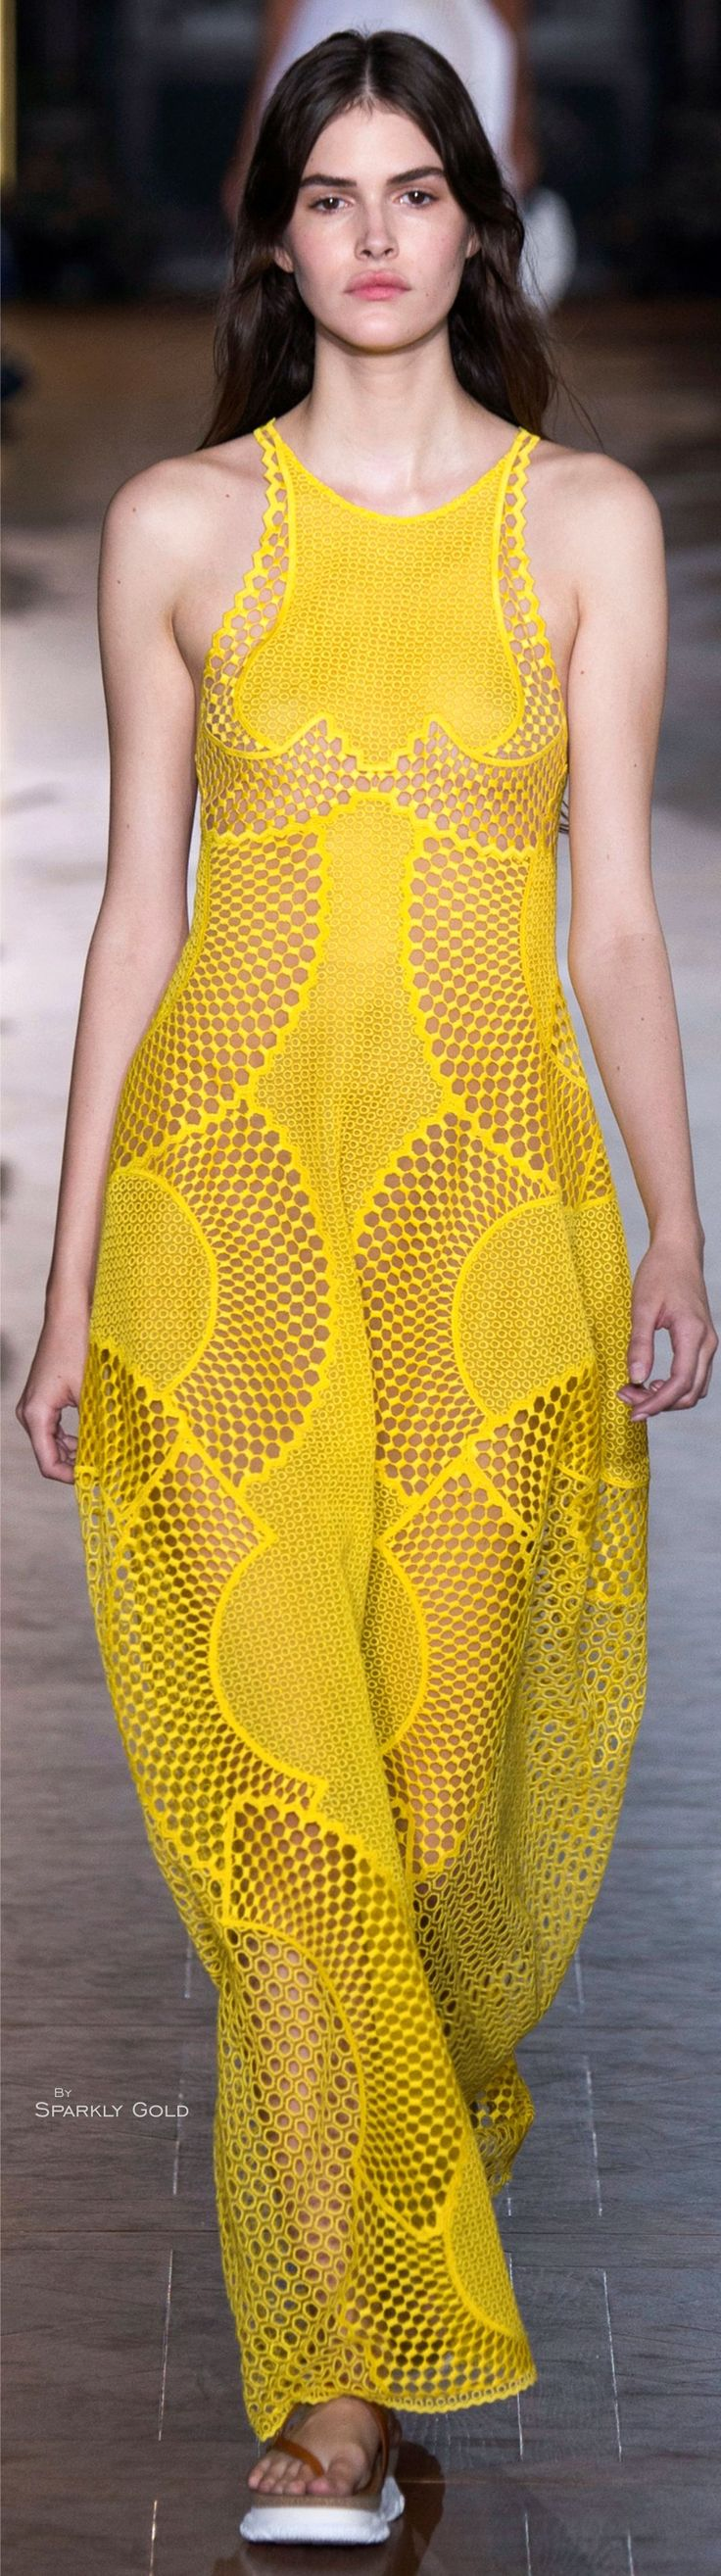 """Stella McCartney Spring 2016 """"And the LORD said to Moses, """"Go to the people and consecrate them today and tomorrow. Have them wash their clothes."""" Exodus 19:10"""